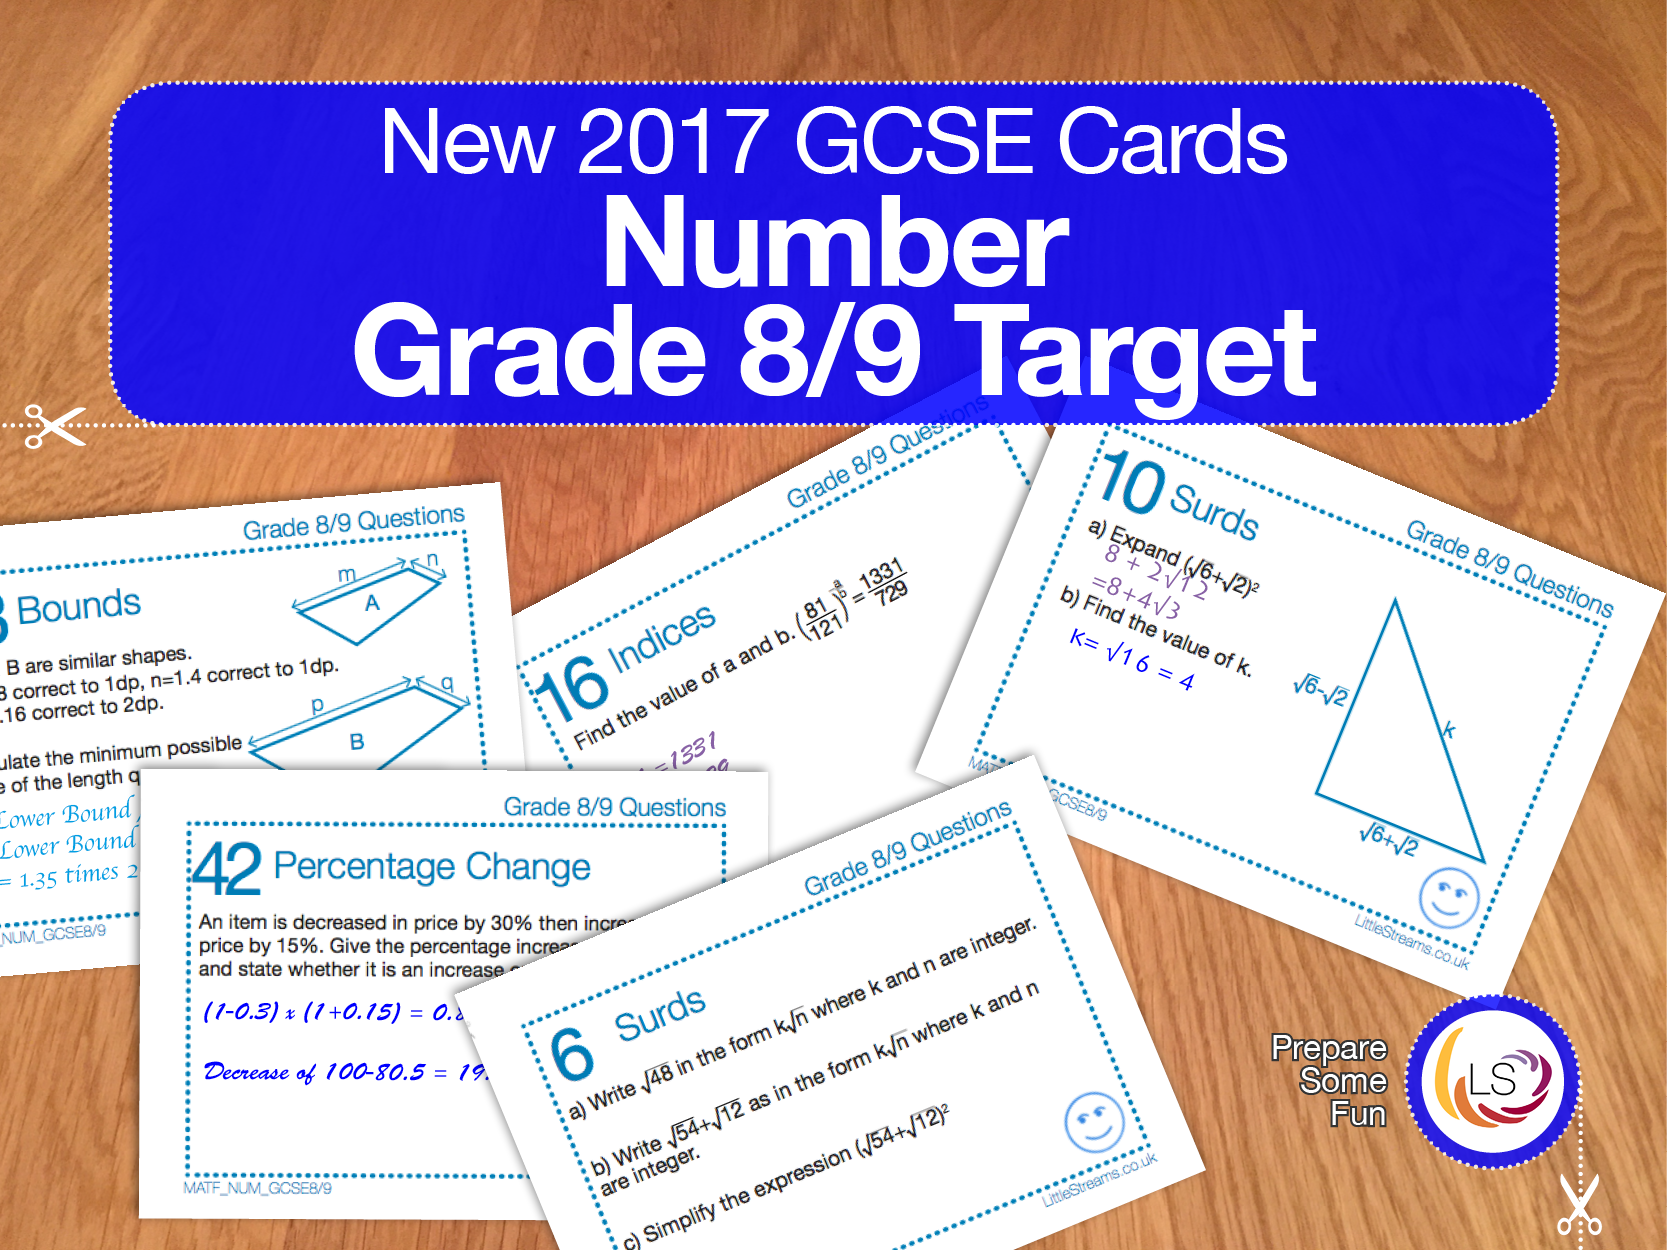 This Pack Contains 48 Exam Style Question Cards Covering